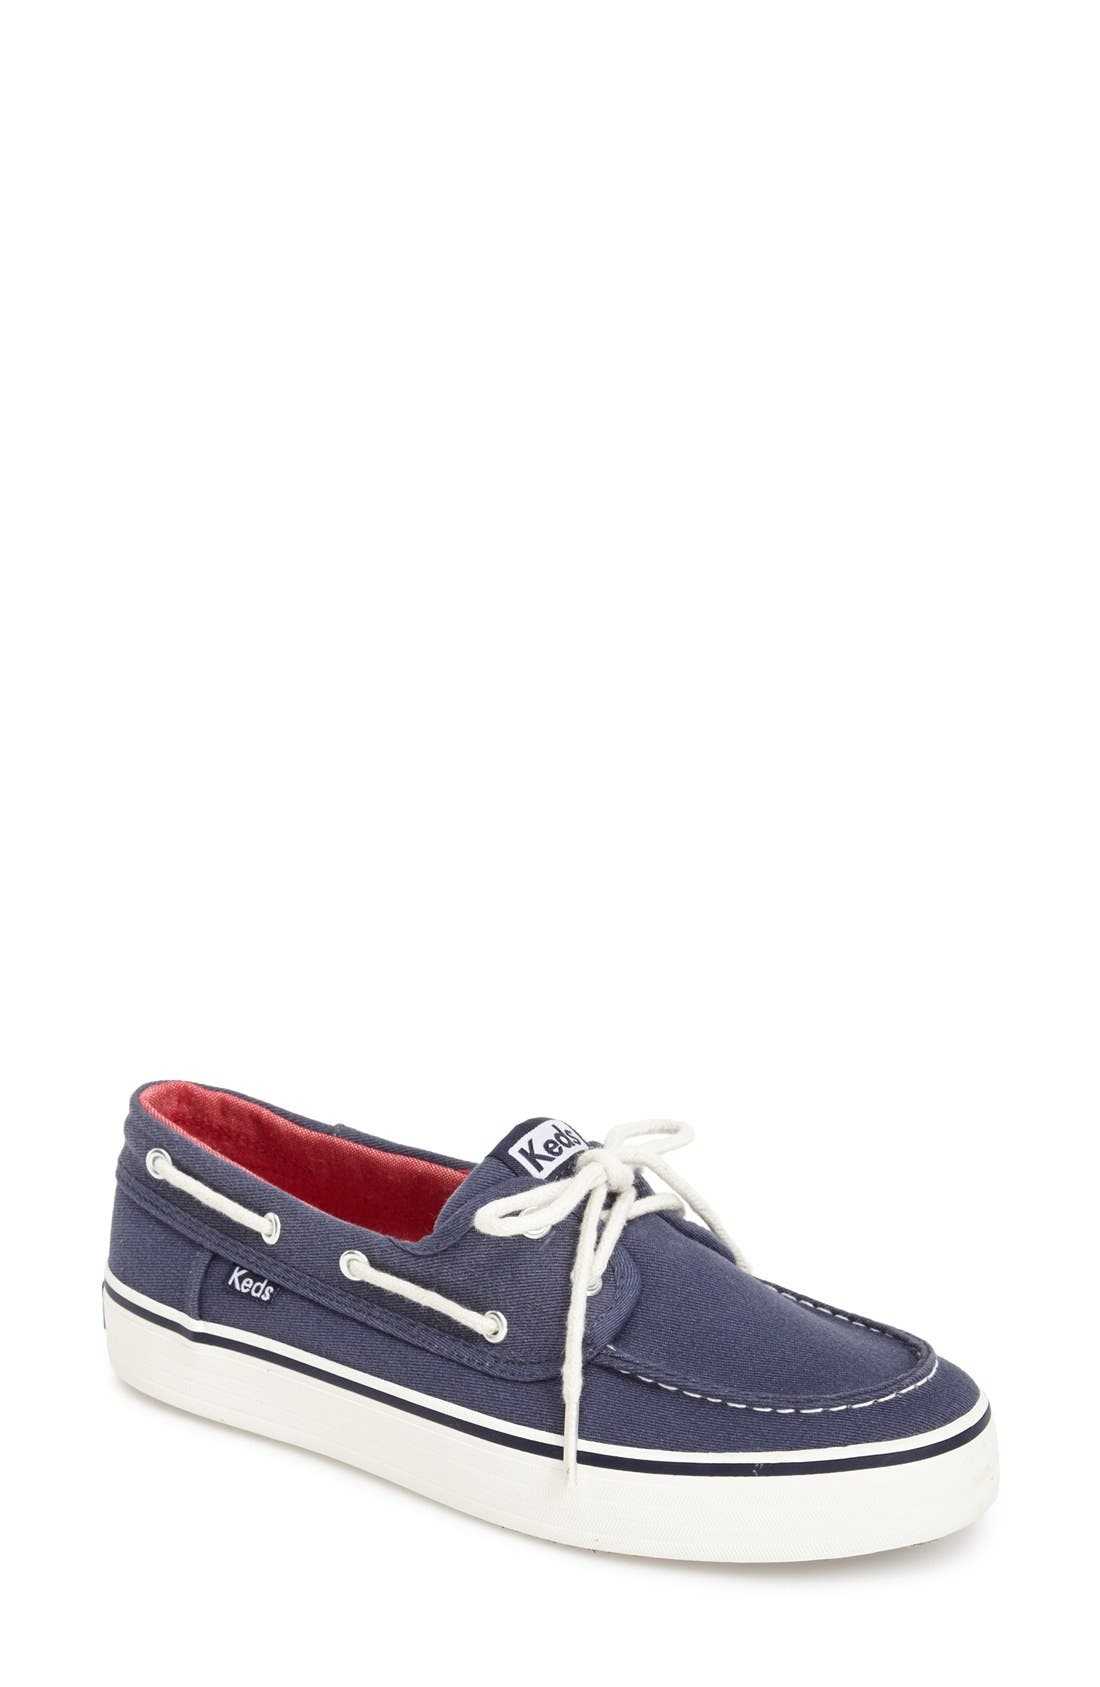 Alternate Image 1 Selected - Keds® 'Bay Bird' Boat Shoe Sneaker (Women)